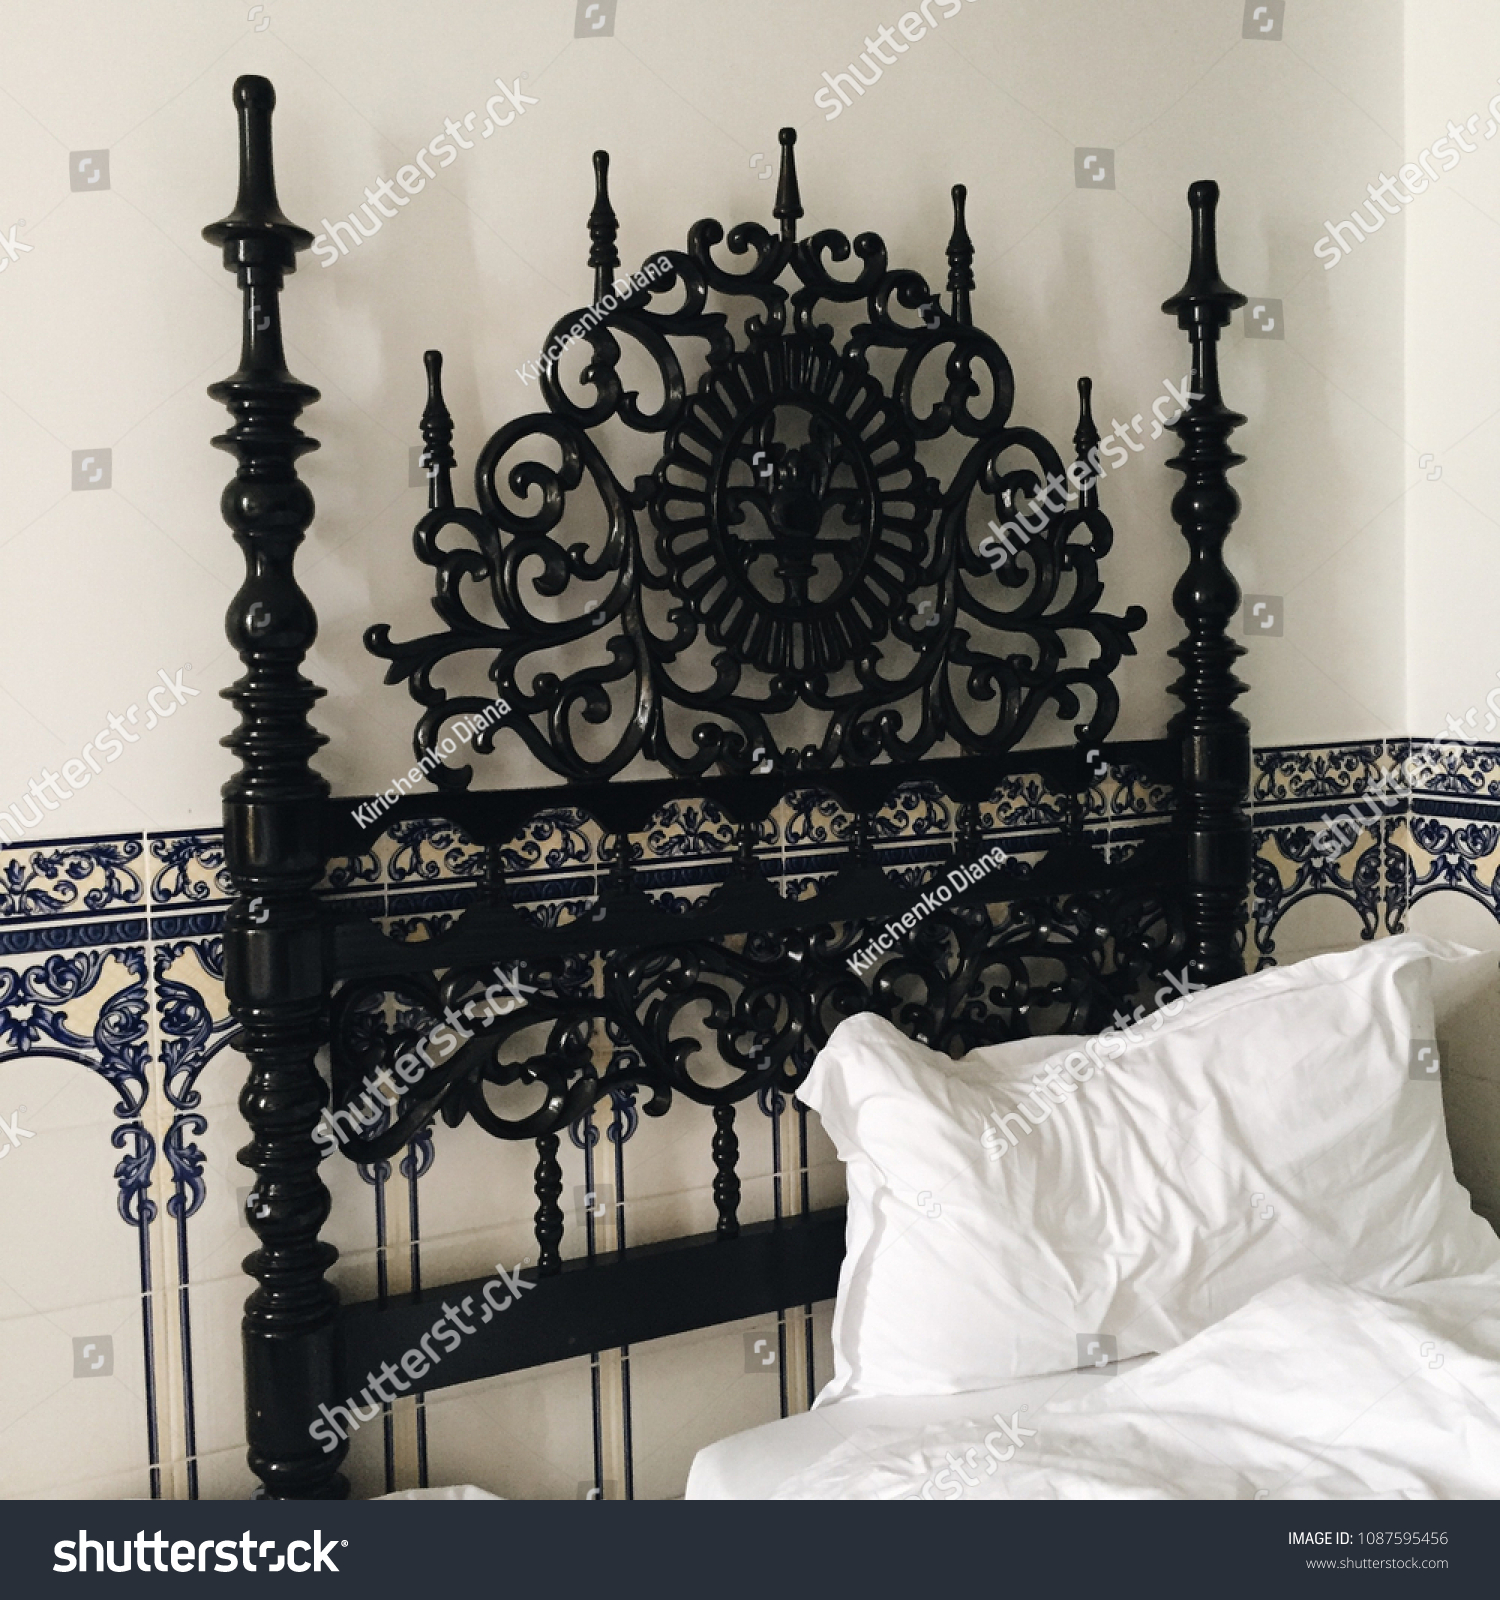 Image of: Gothic Woodcarving Black Bed White Sheets Stock Photo Edit Now 1087595456